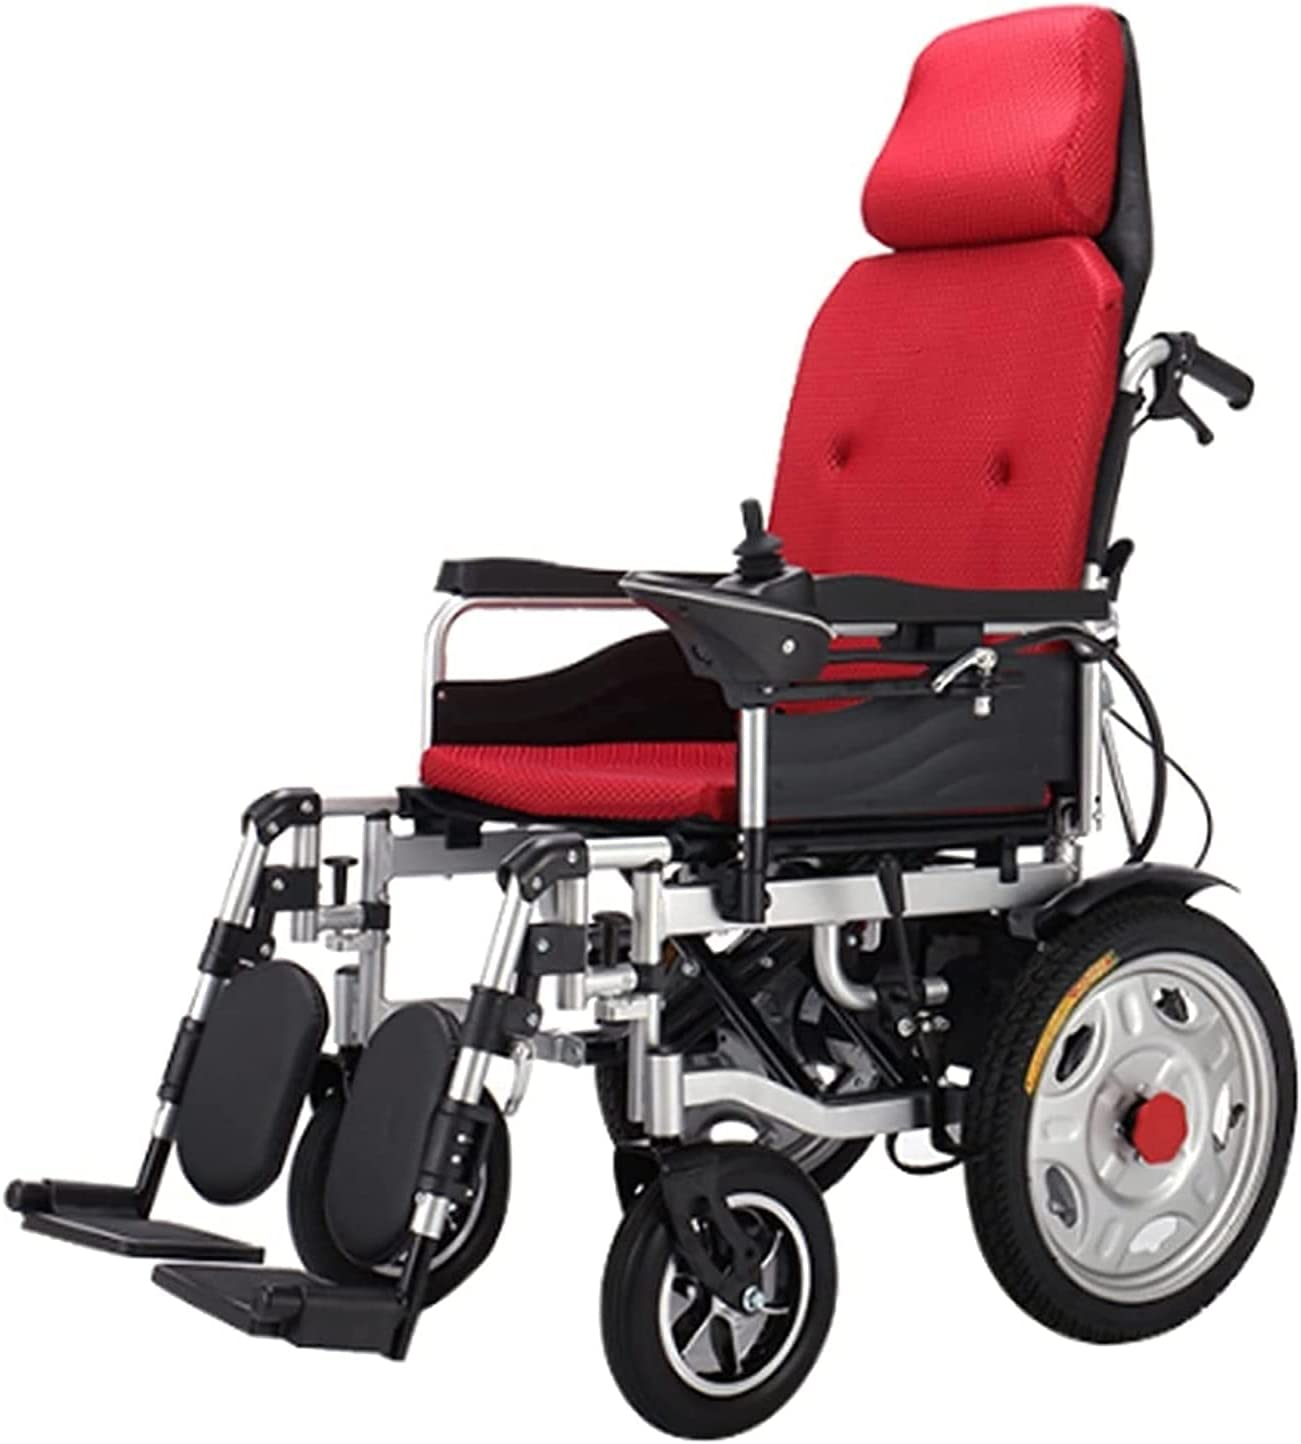 Easy-to-use Electric Wheelchair unisex with Headrest Reclining Standing Whee Full